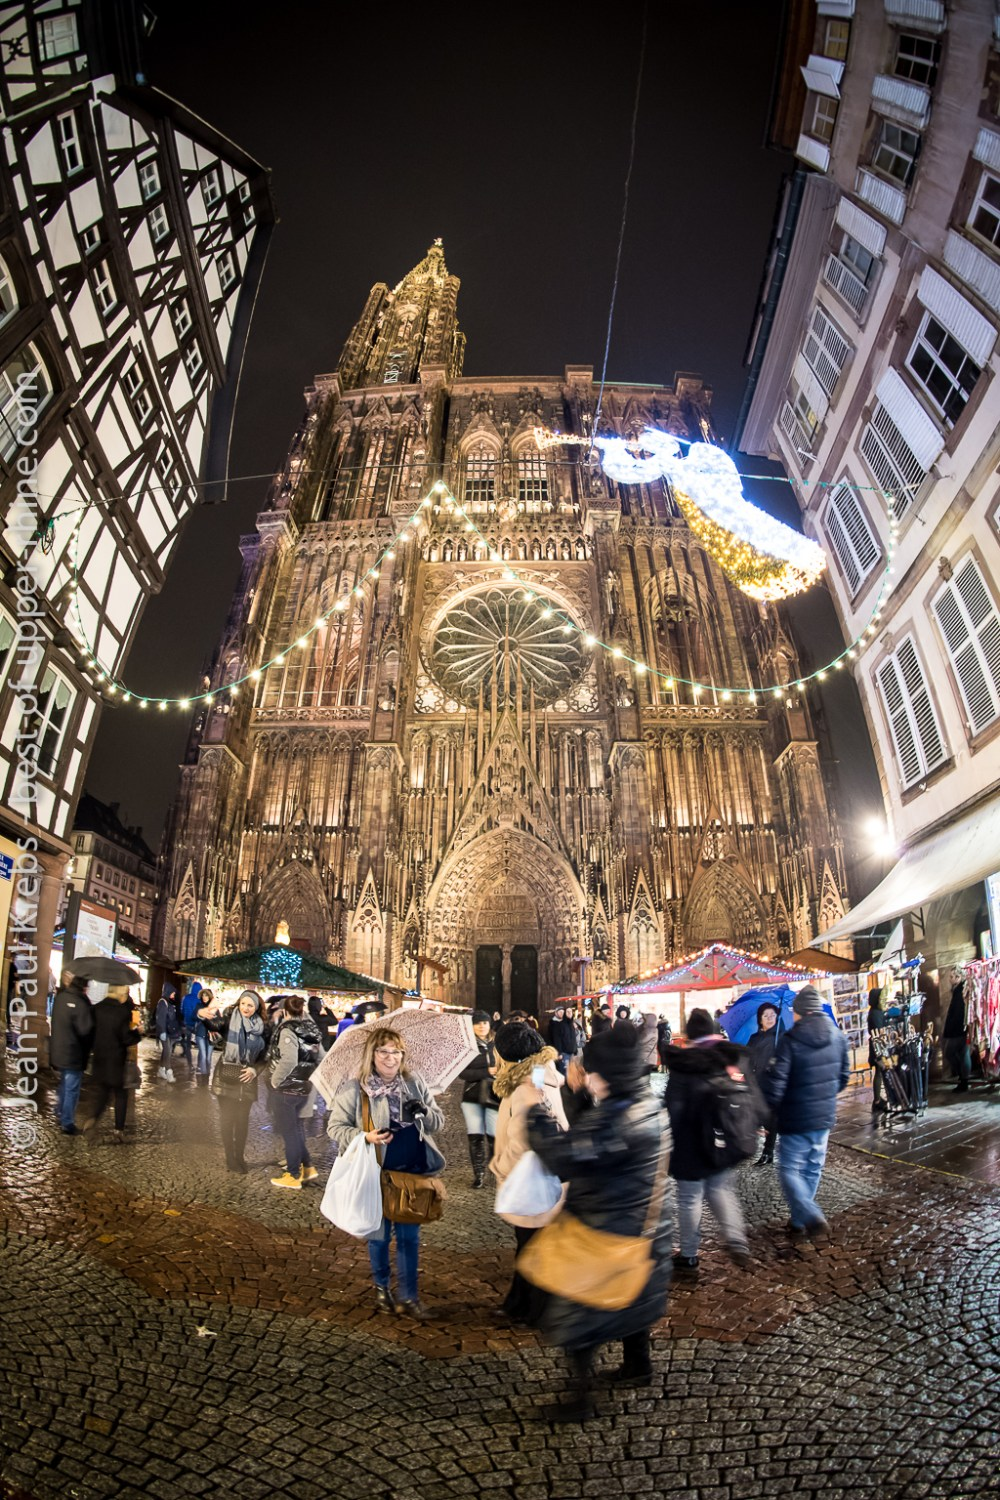 The Christmas market near the cathedral of Strasbourg, Alsace, dates back to 1570.